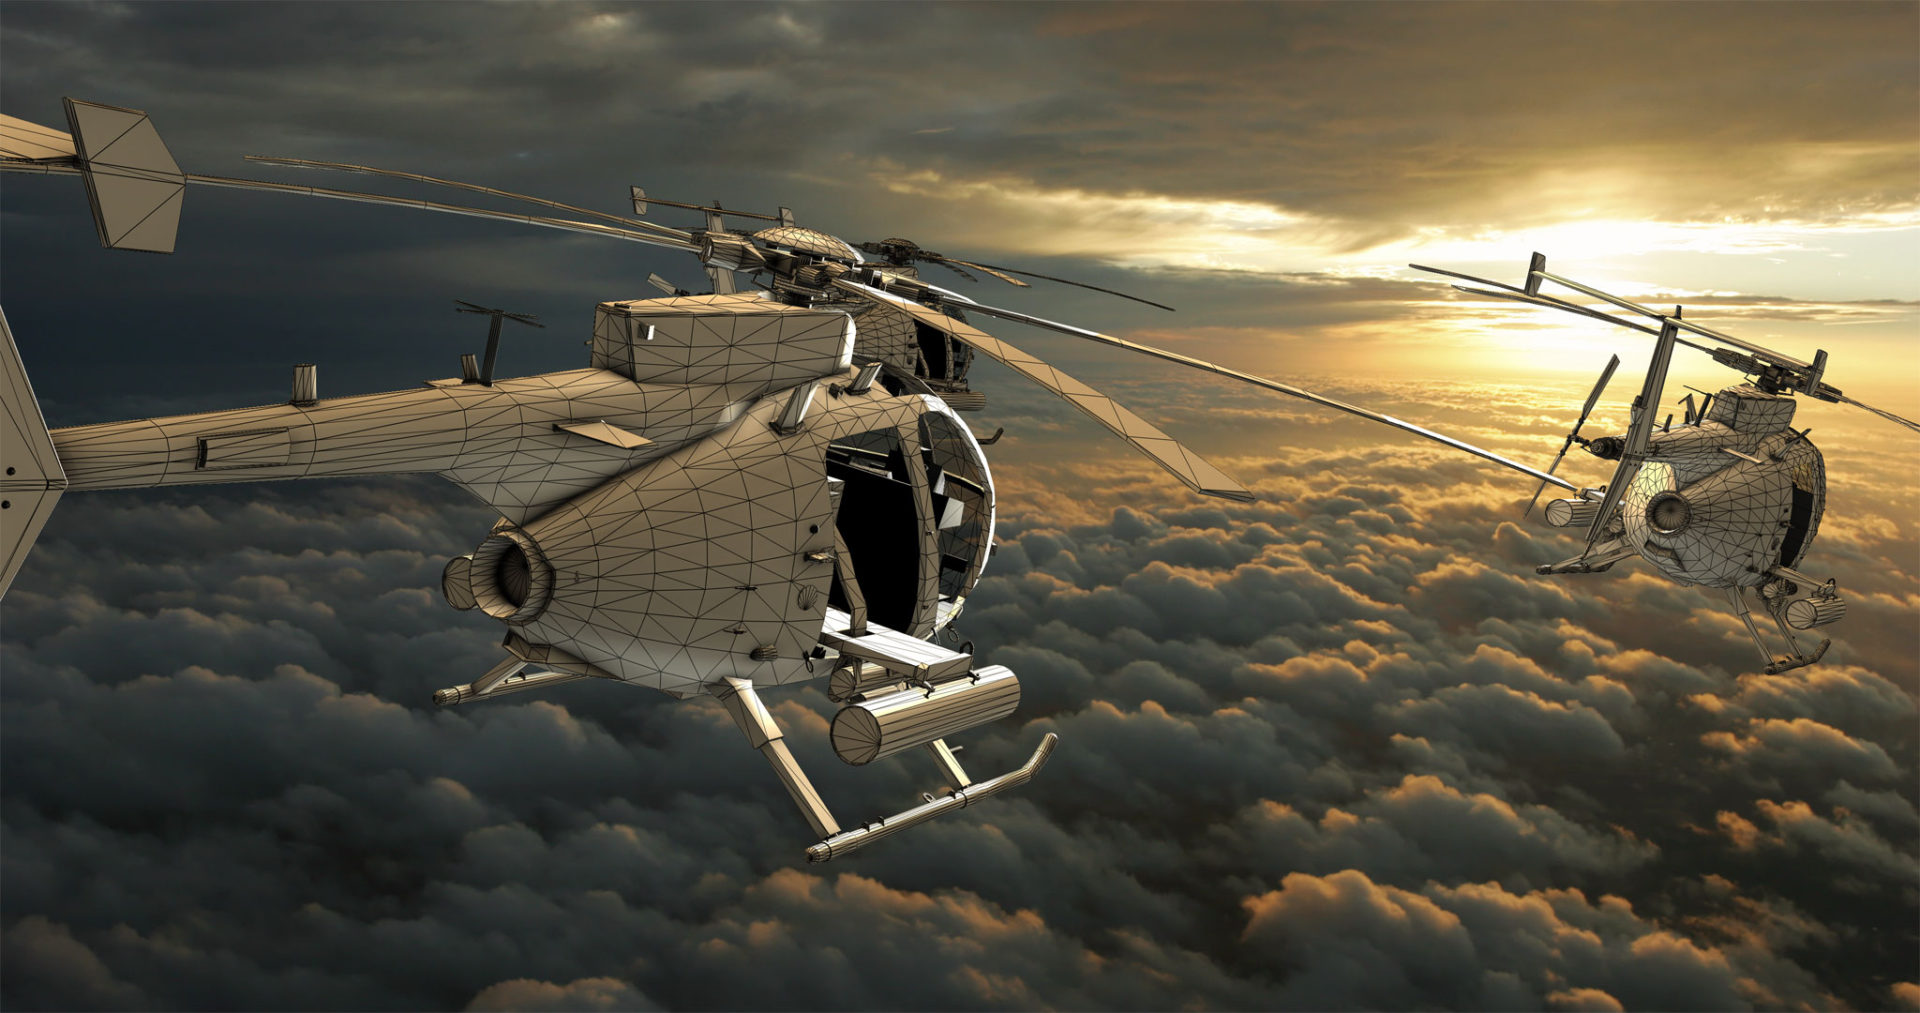 3D littlebird helicopter composite wireframe - visual effects tips for shooting realistic shots